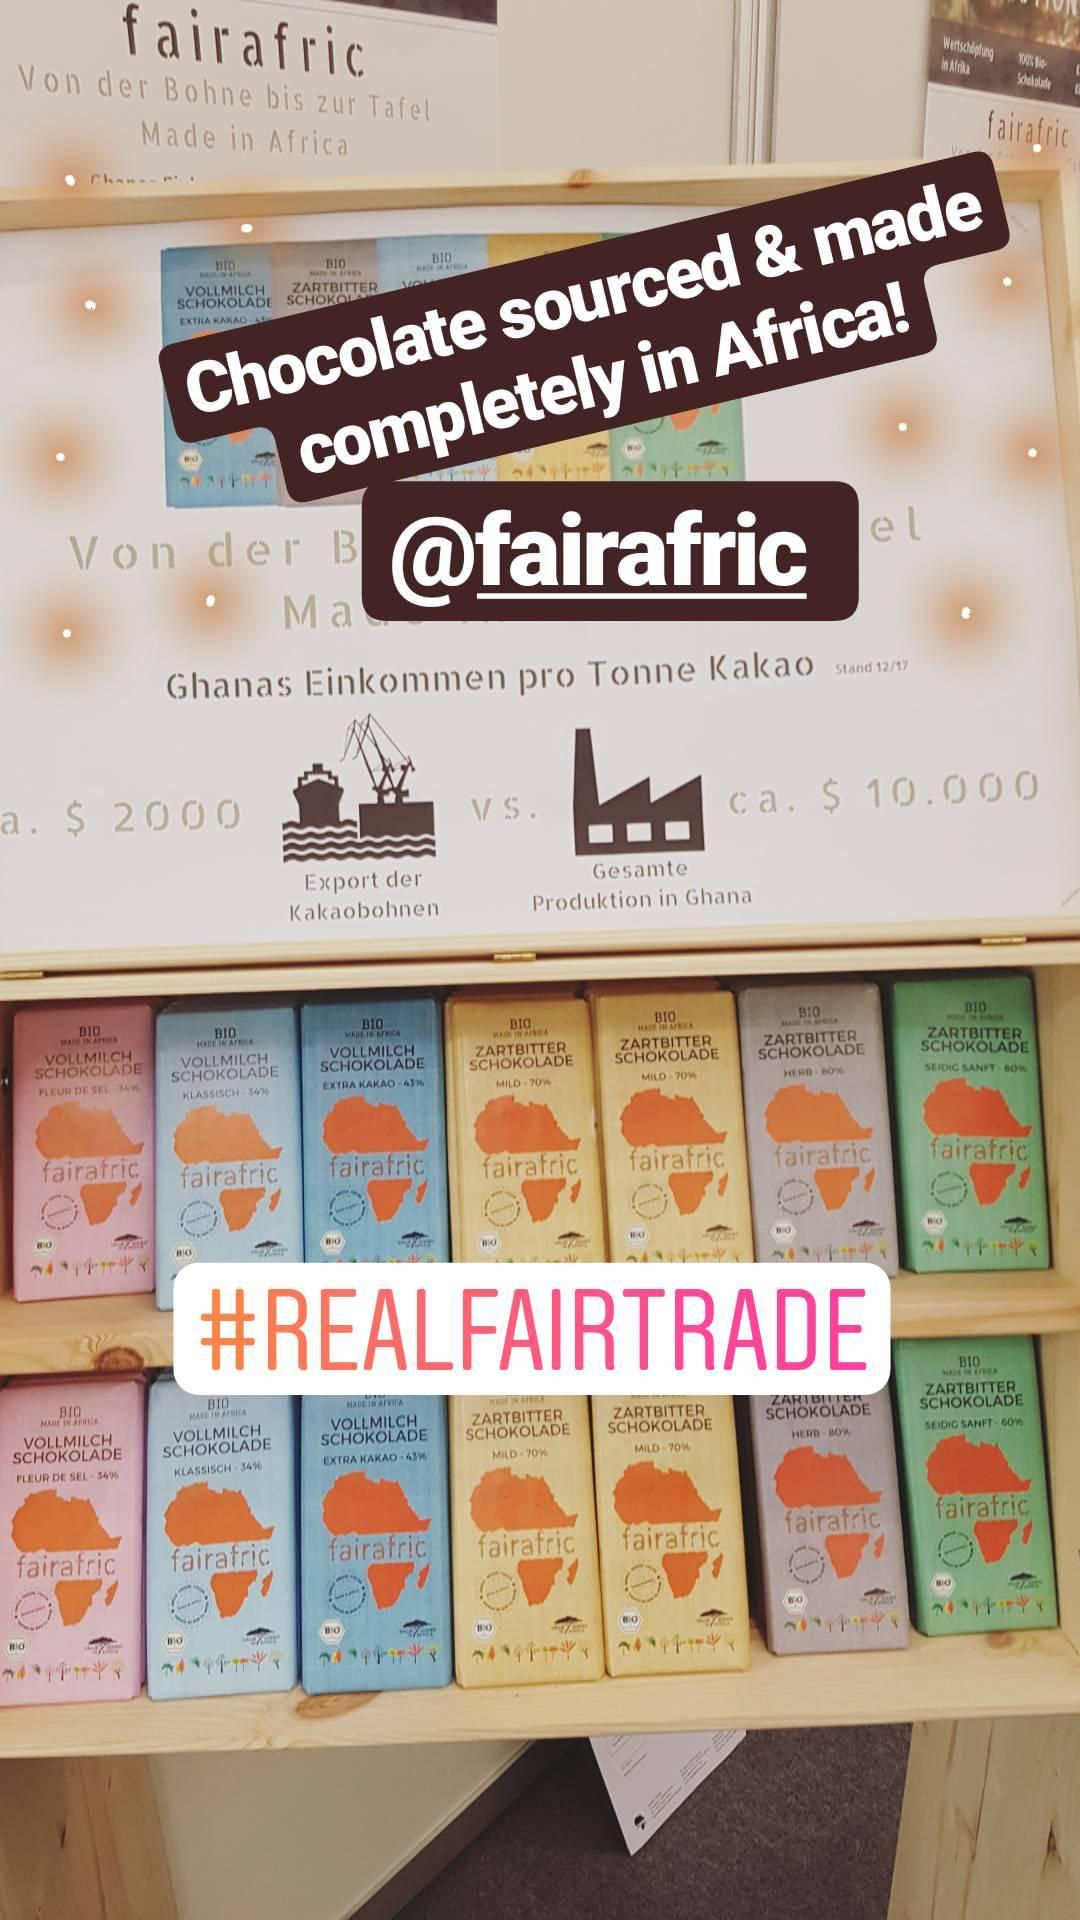 Fairafric Fair Trade Chocolate